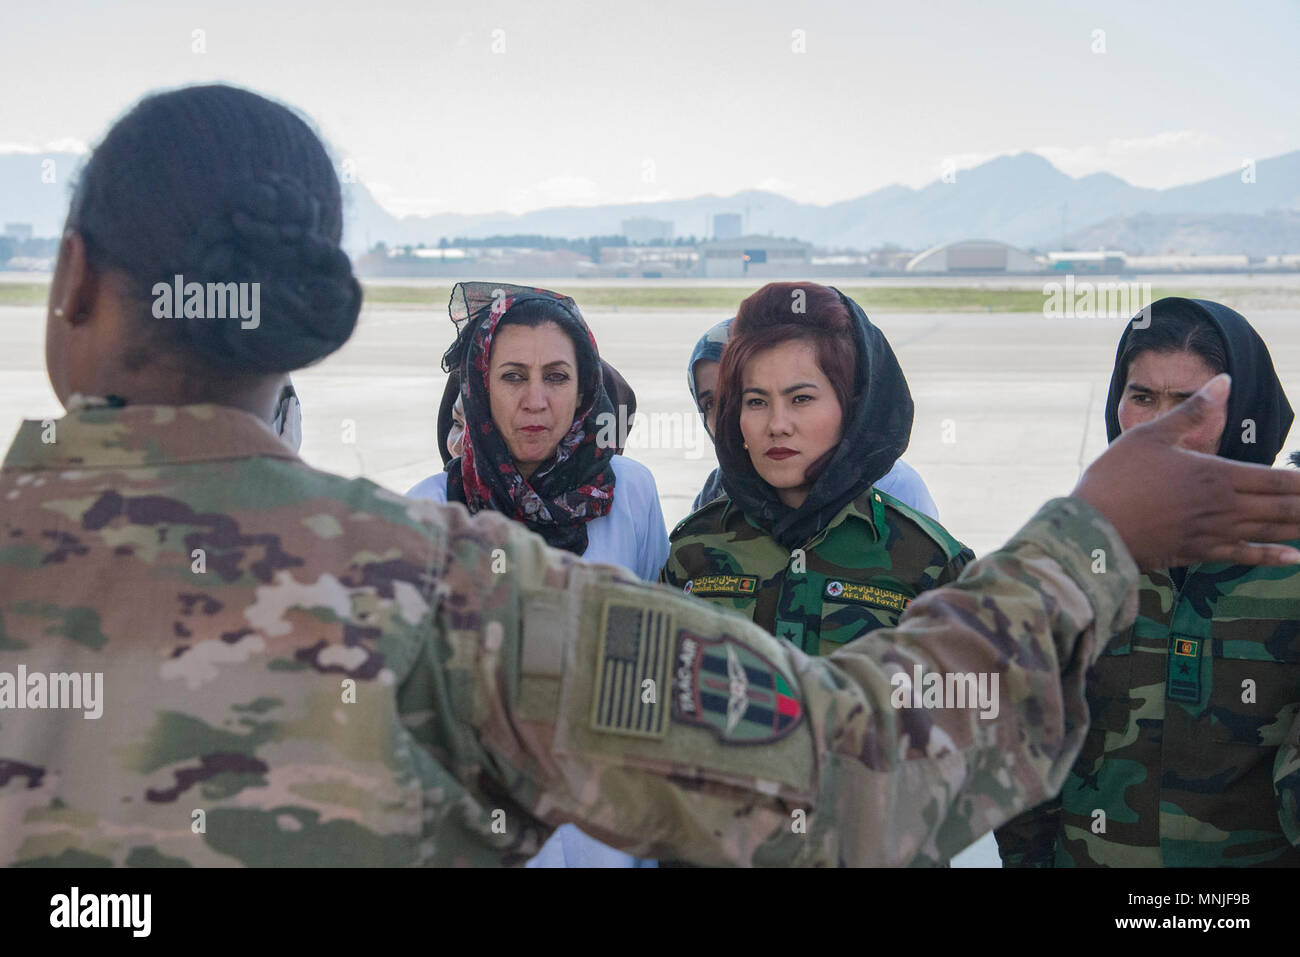 Afghan Air Force medics listen to Master Sgt. Ruth Celestine, Train, Advise, Assist Command-Air medical advisor, as she talks about the importance of casualty evacuation procedures with Afghan Air Force medics, March 3, 2018, Kabul Air Wing, Afghanistan. For many of the medics the information provided with the training was new. - Stock Image